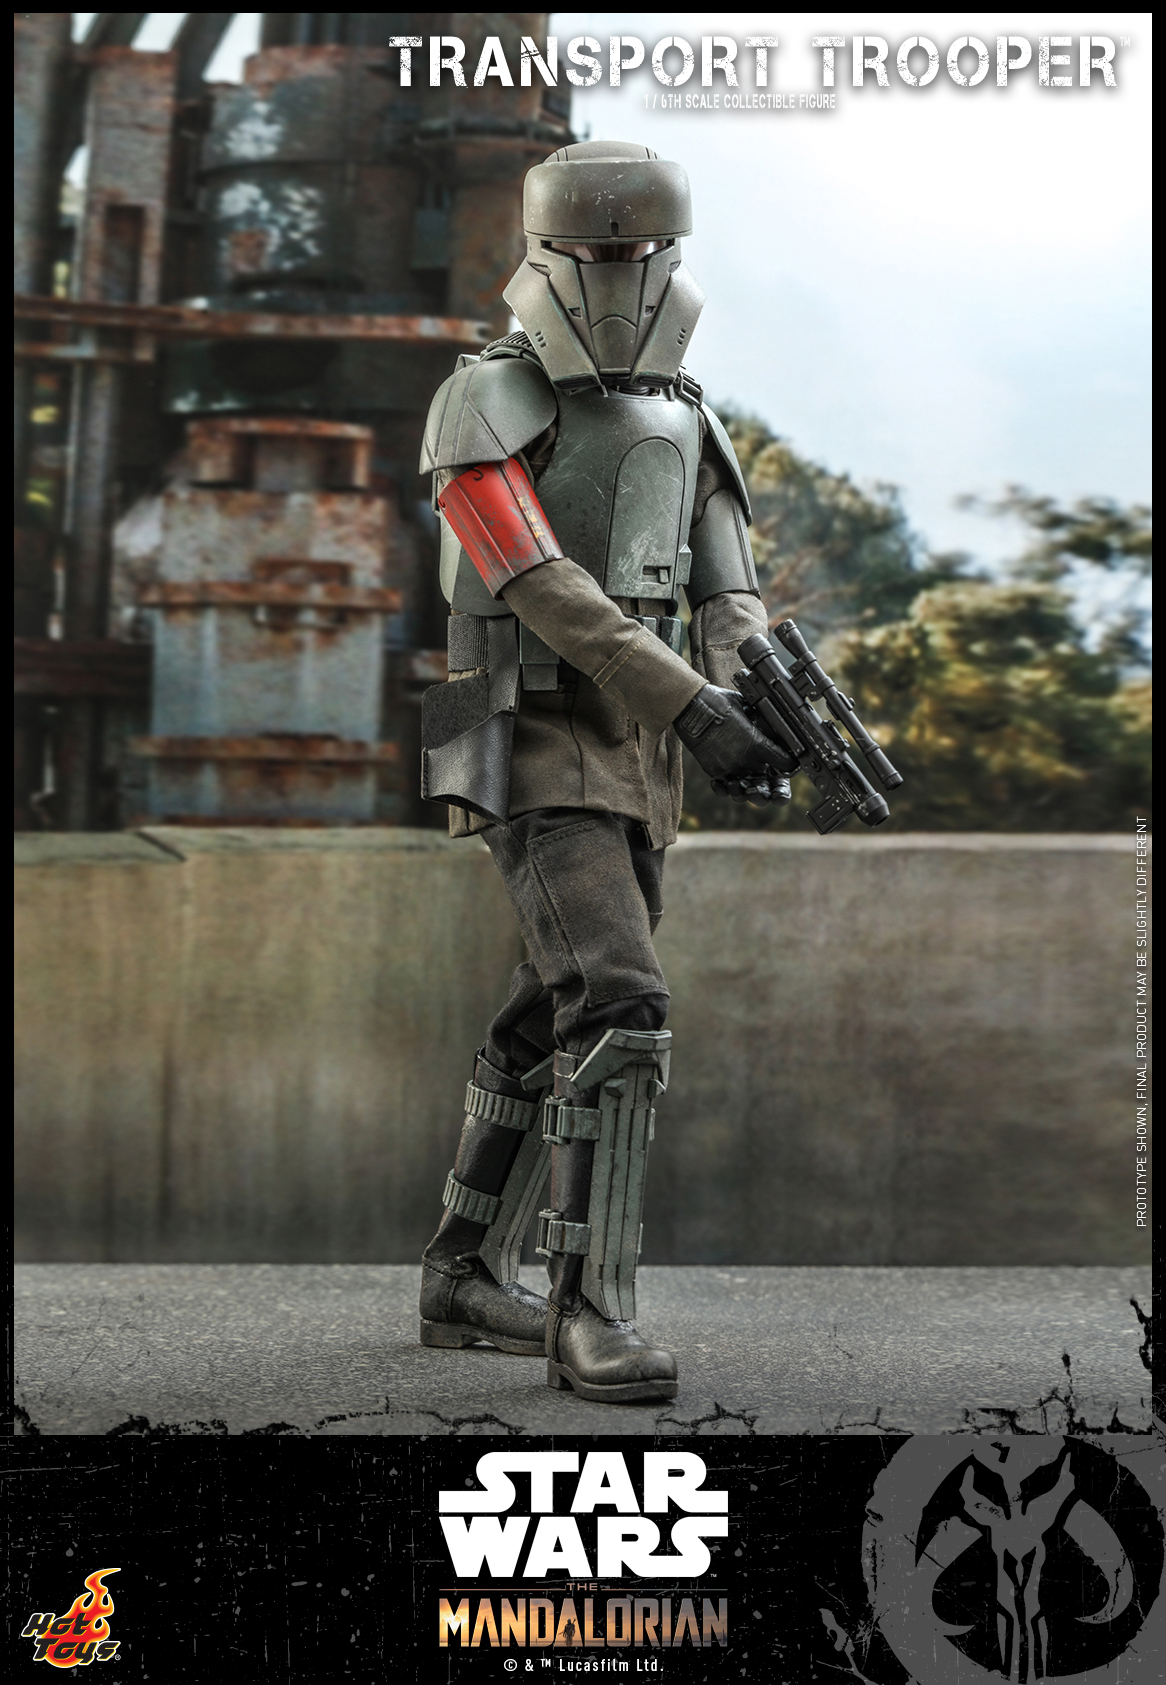 Hot Toys - Mando - Transport Trooper collectible figure_PR2